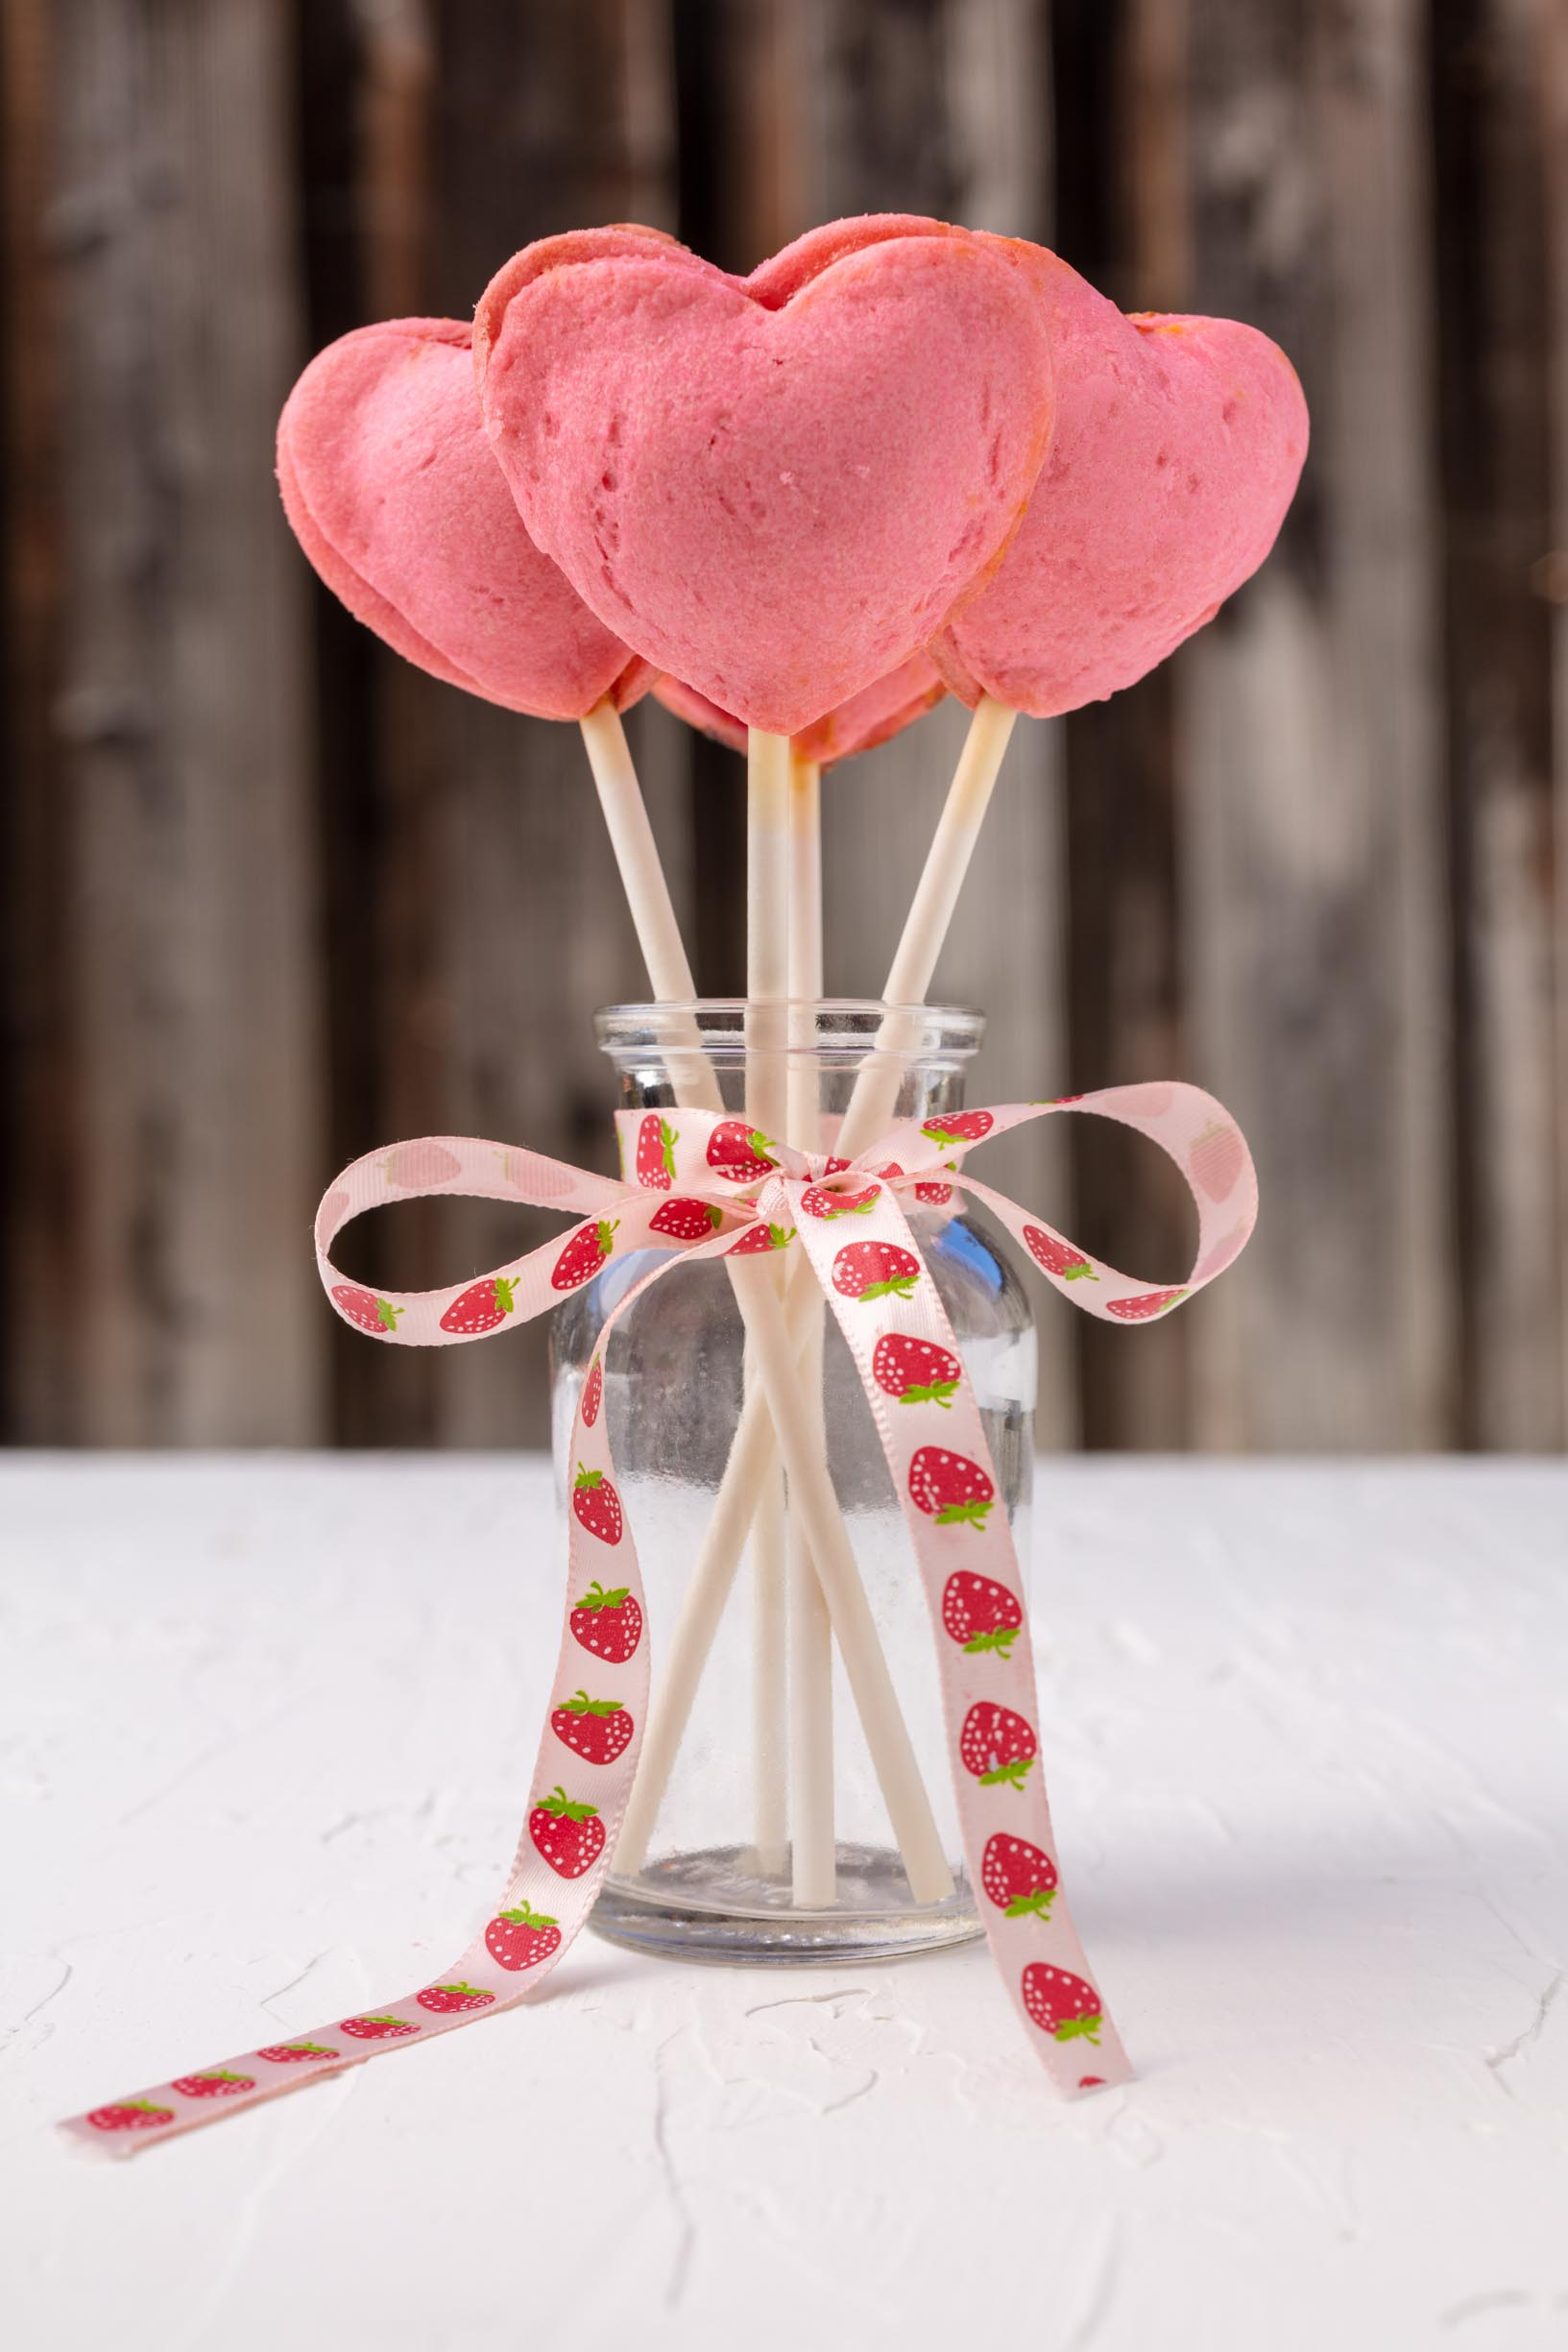 pink heart shaped pie pops sticking out of a jar tied with a bow